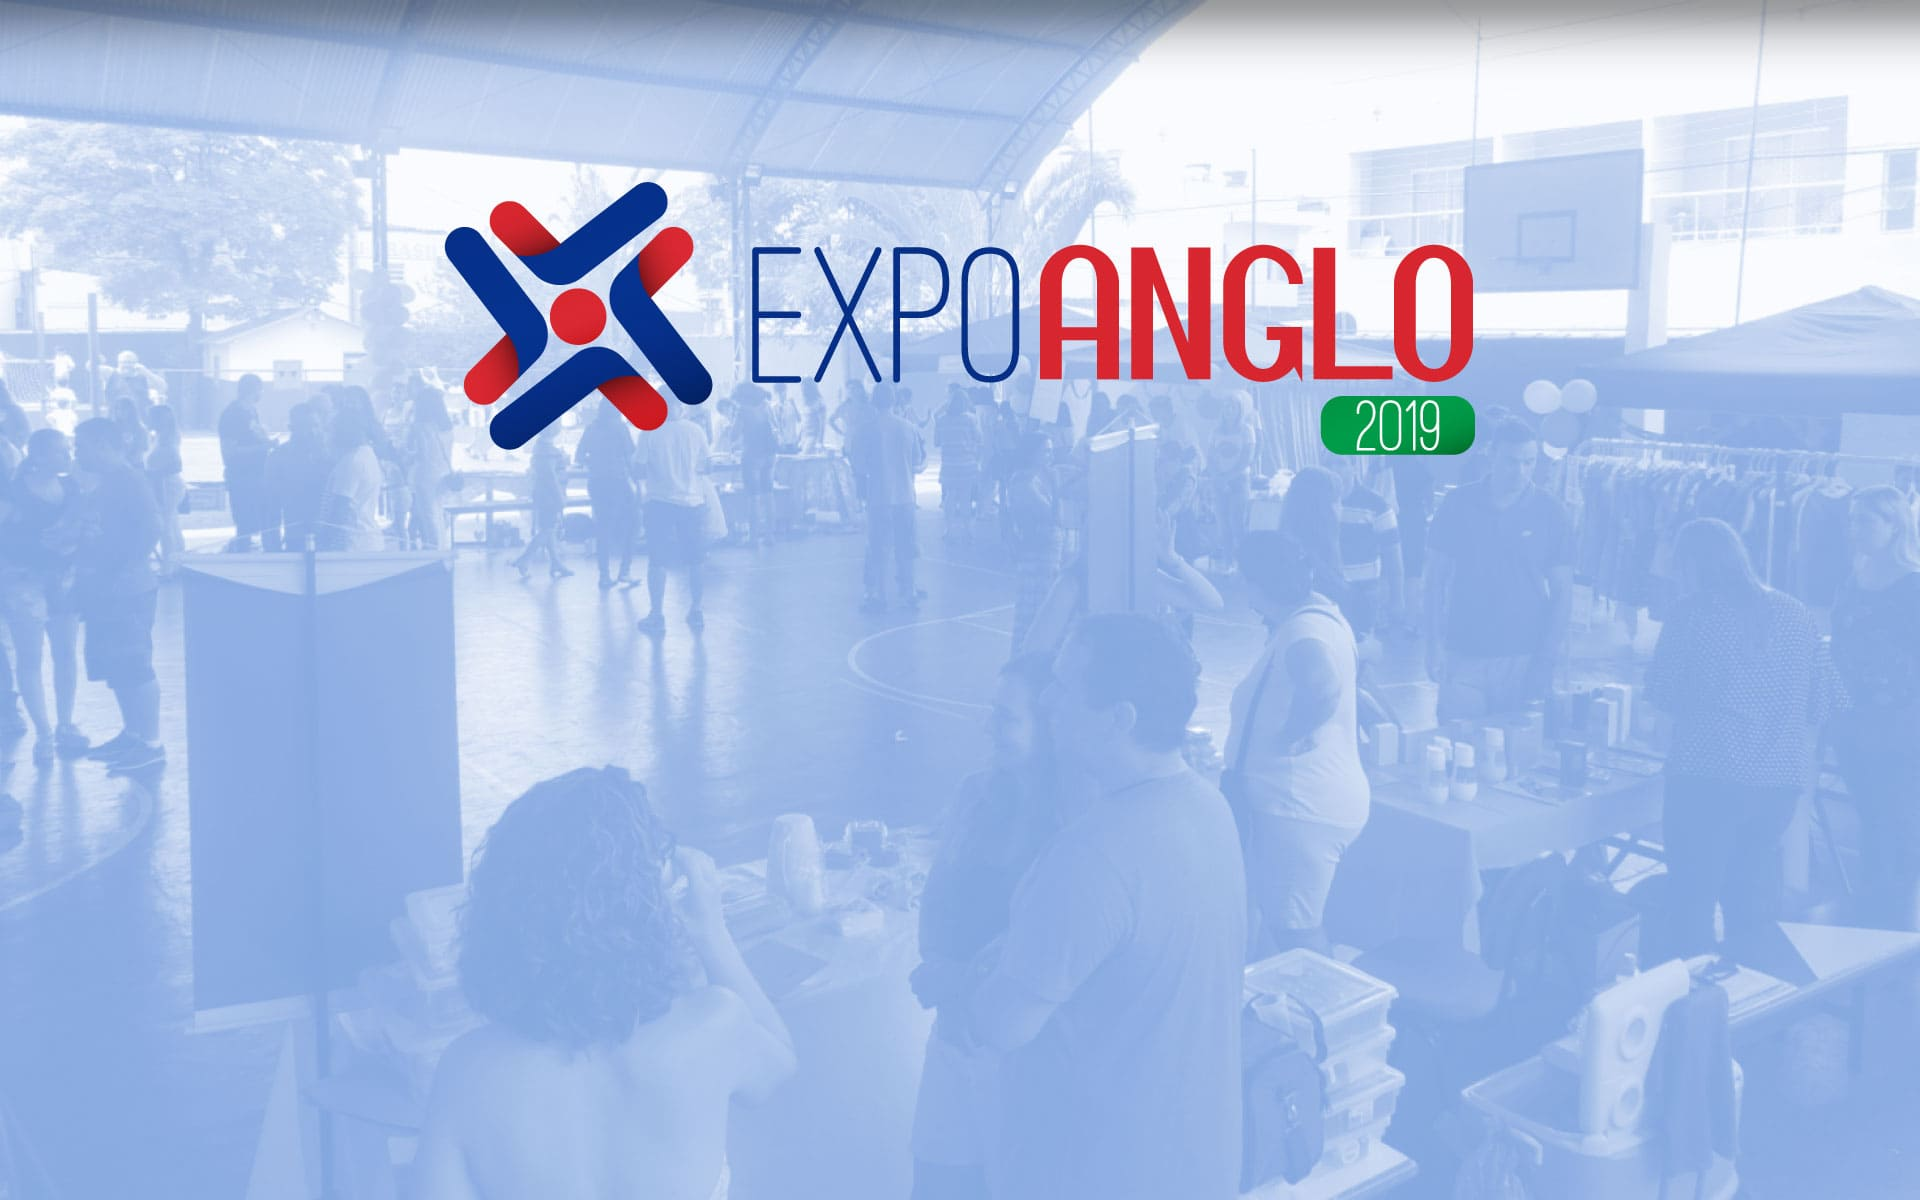 EXPOANGLO 2019